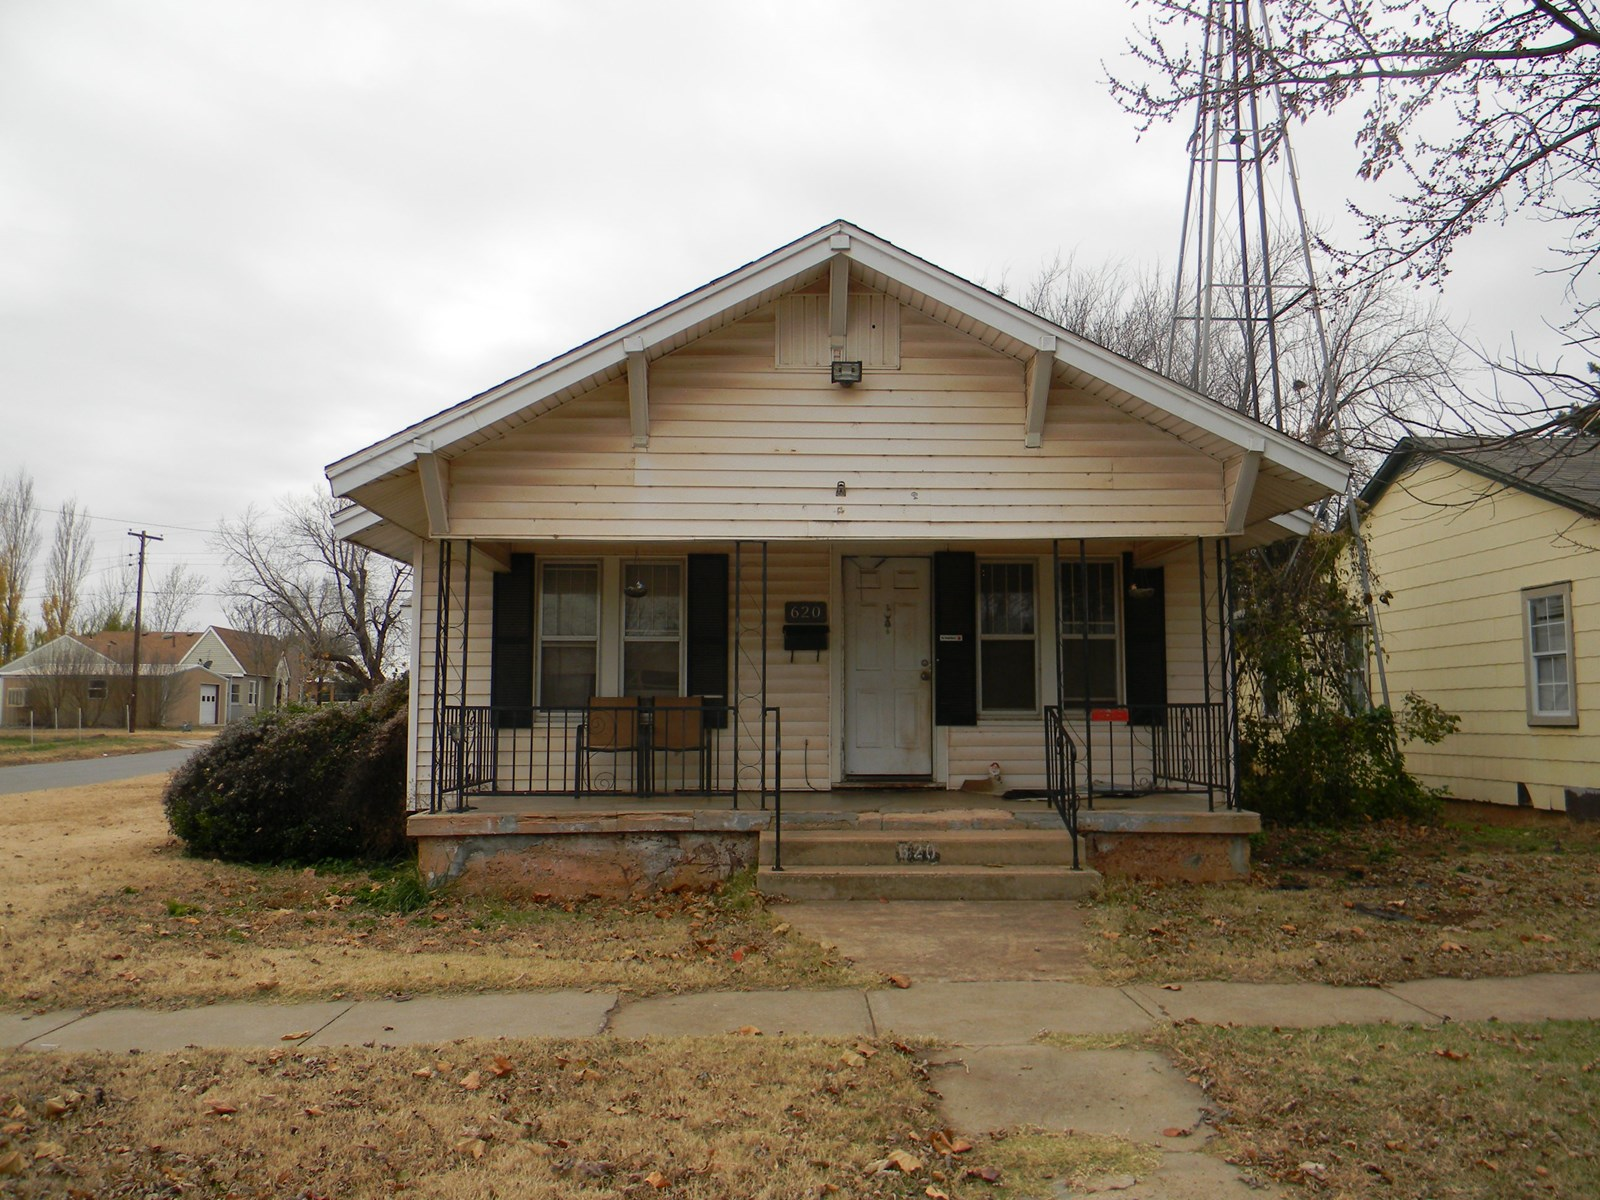 4 Bedroom 2 Bath Home for Sale Clinton, Oklahoma